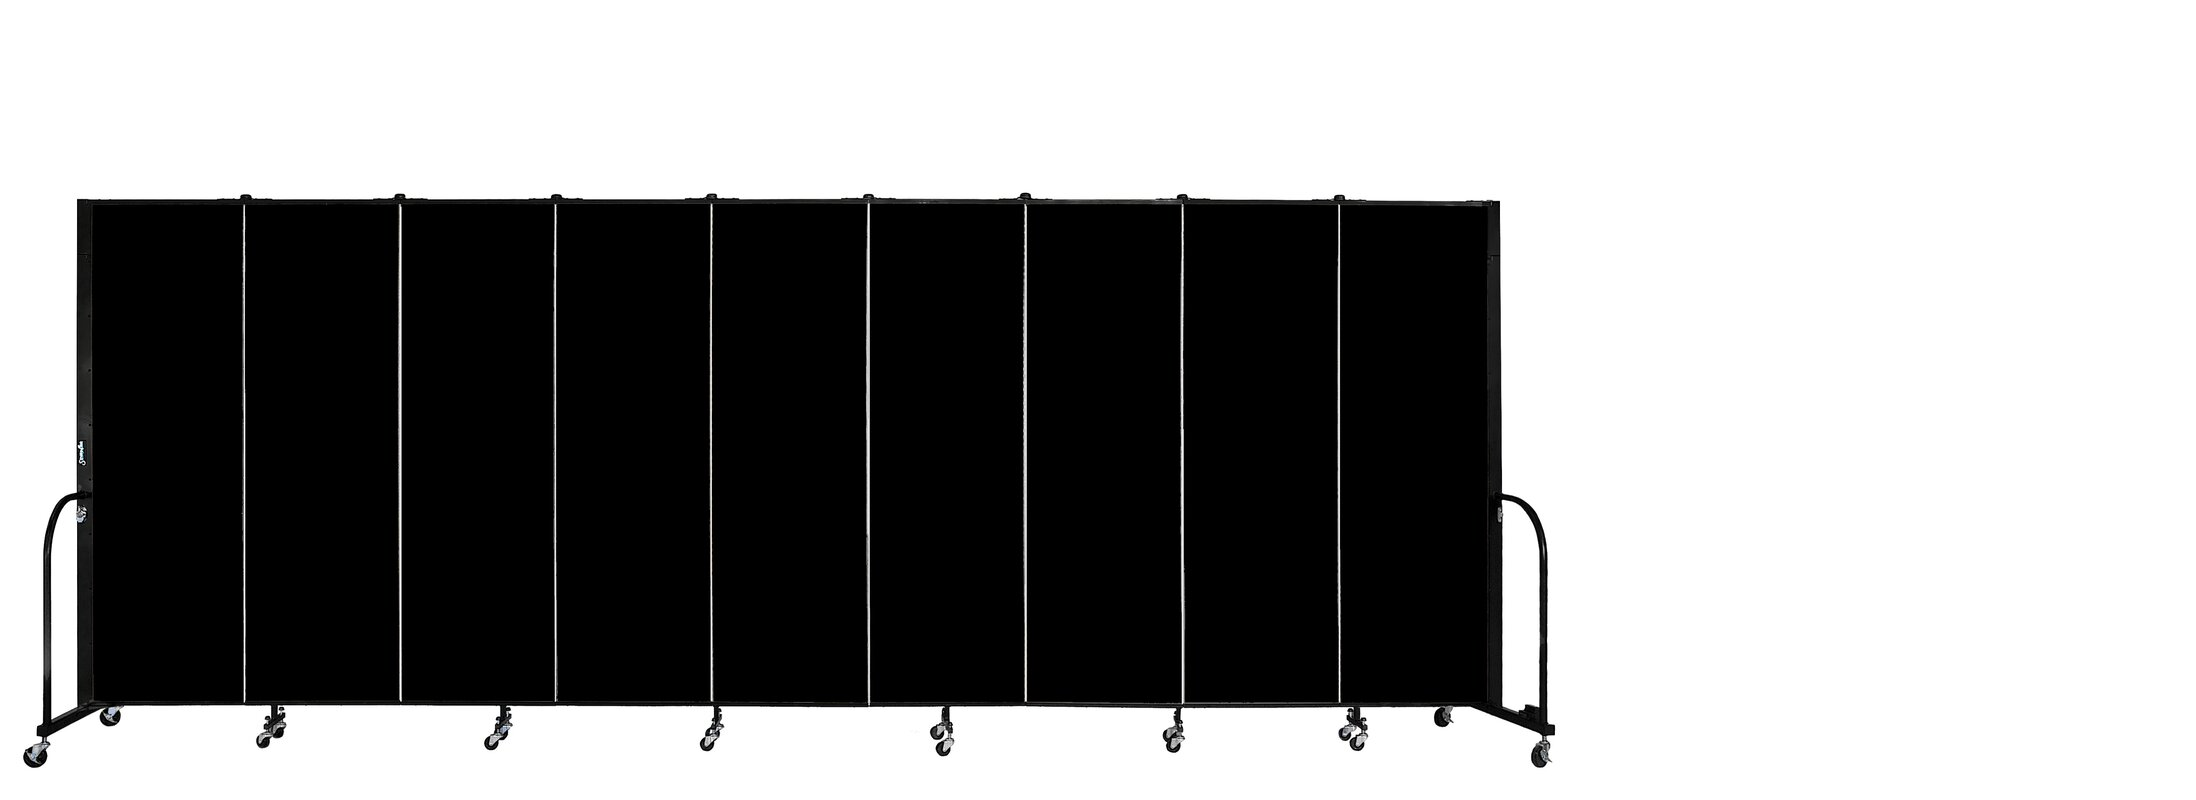 divider room portable movable rent dividers seasonalfood info for